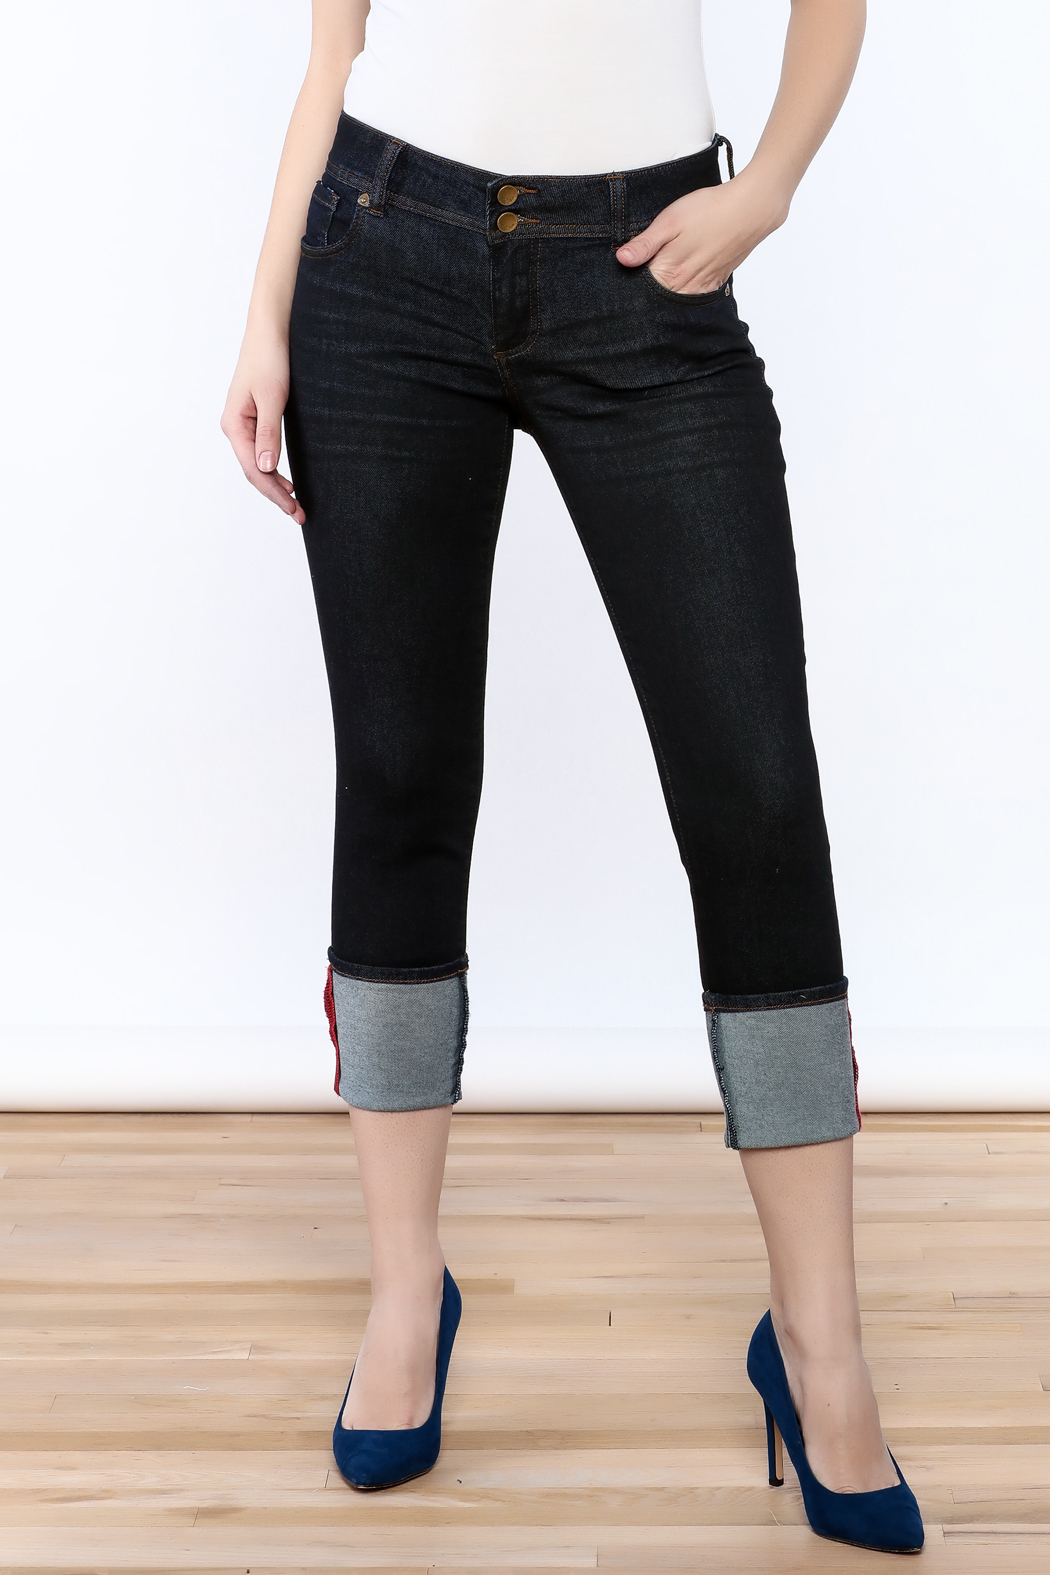 Kut from the Kloth Cameron Skinny Jeans - Main Image